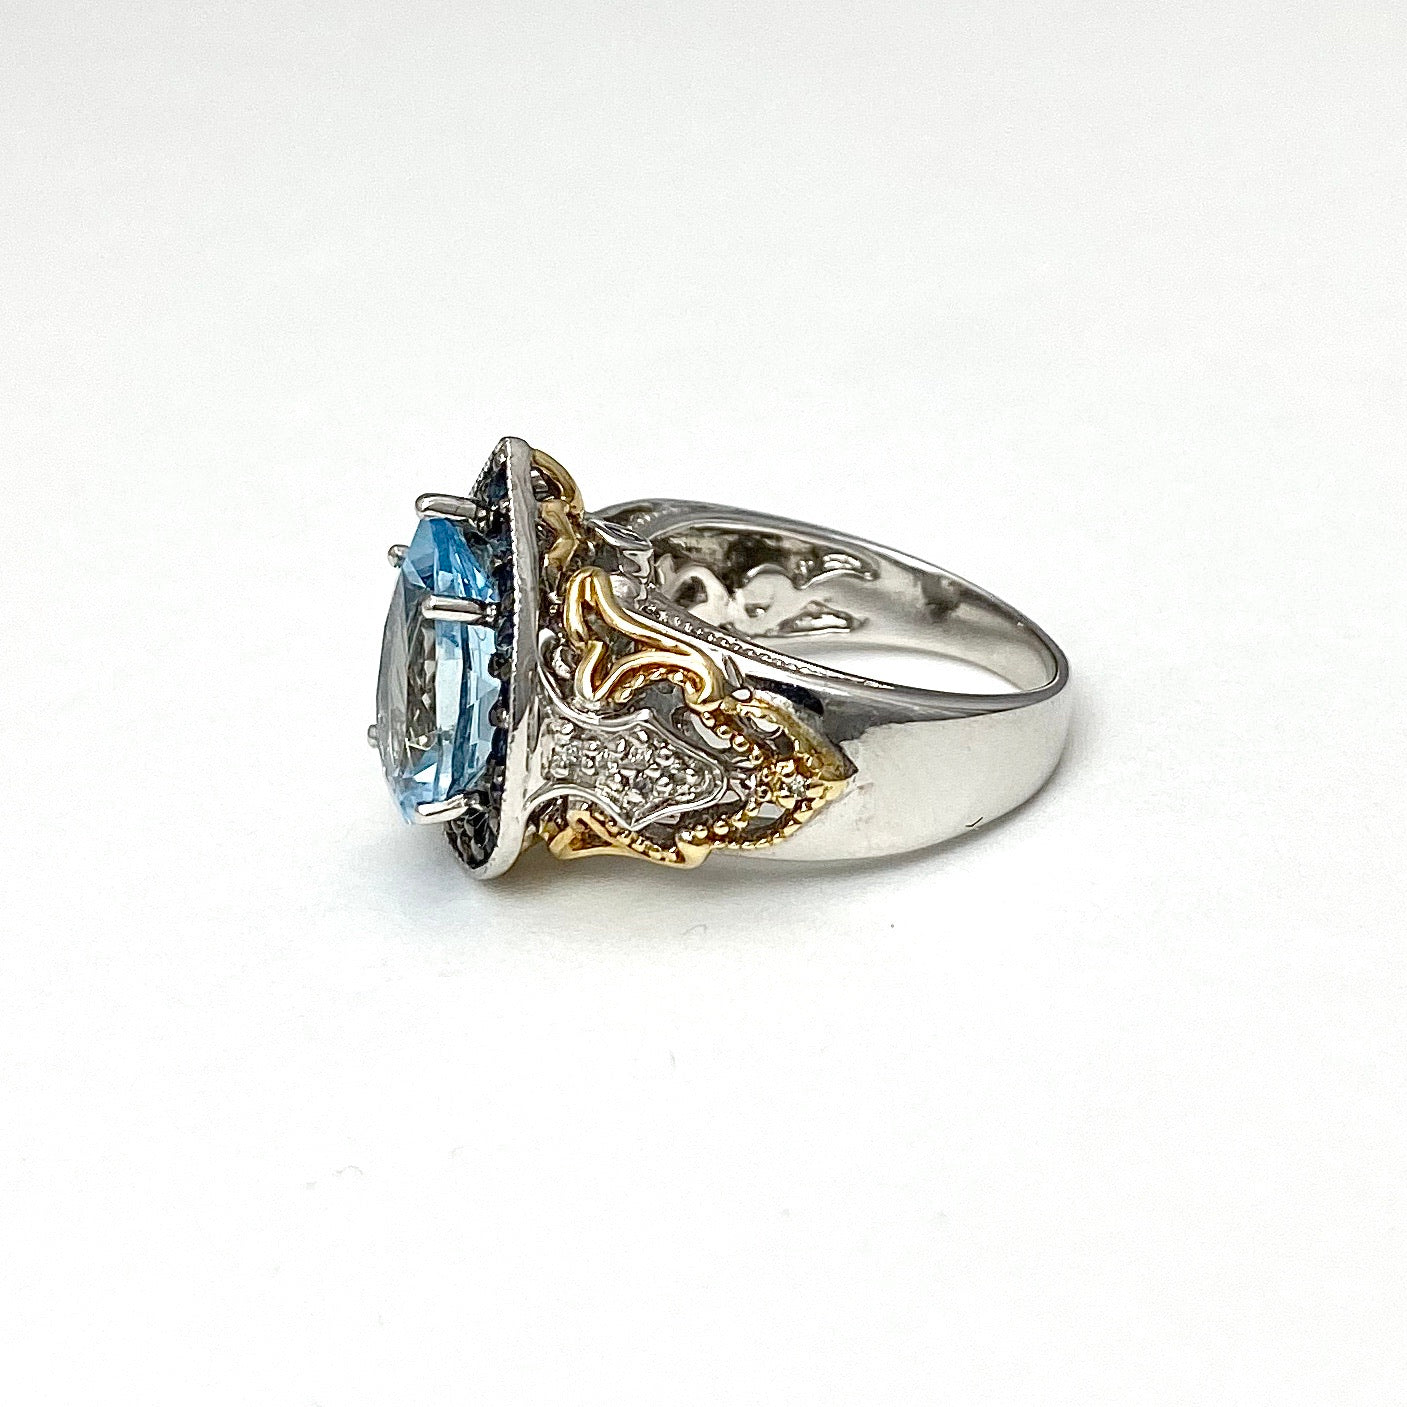 14K White and Yellow Gold Aquamarine, Sapphires and Diamonds Cocktail Ring